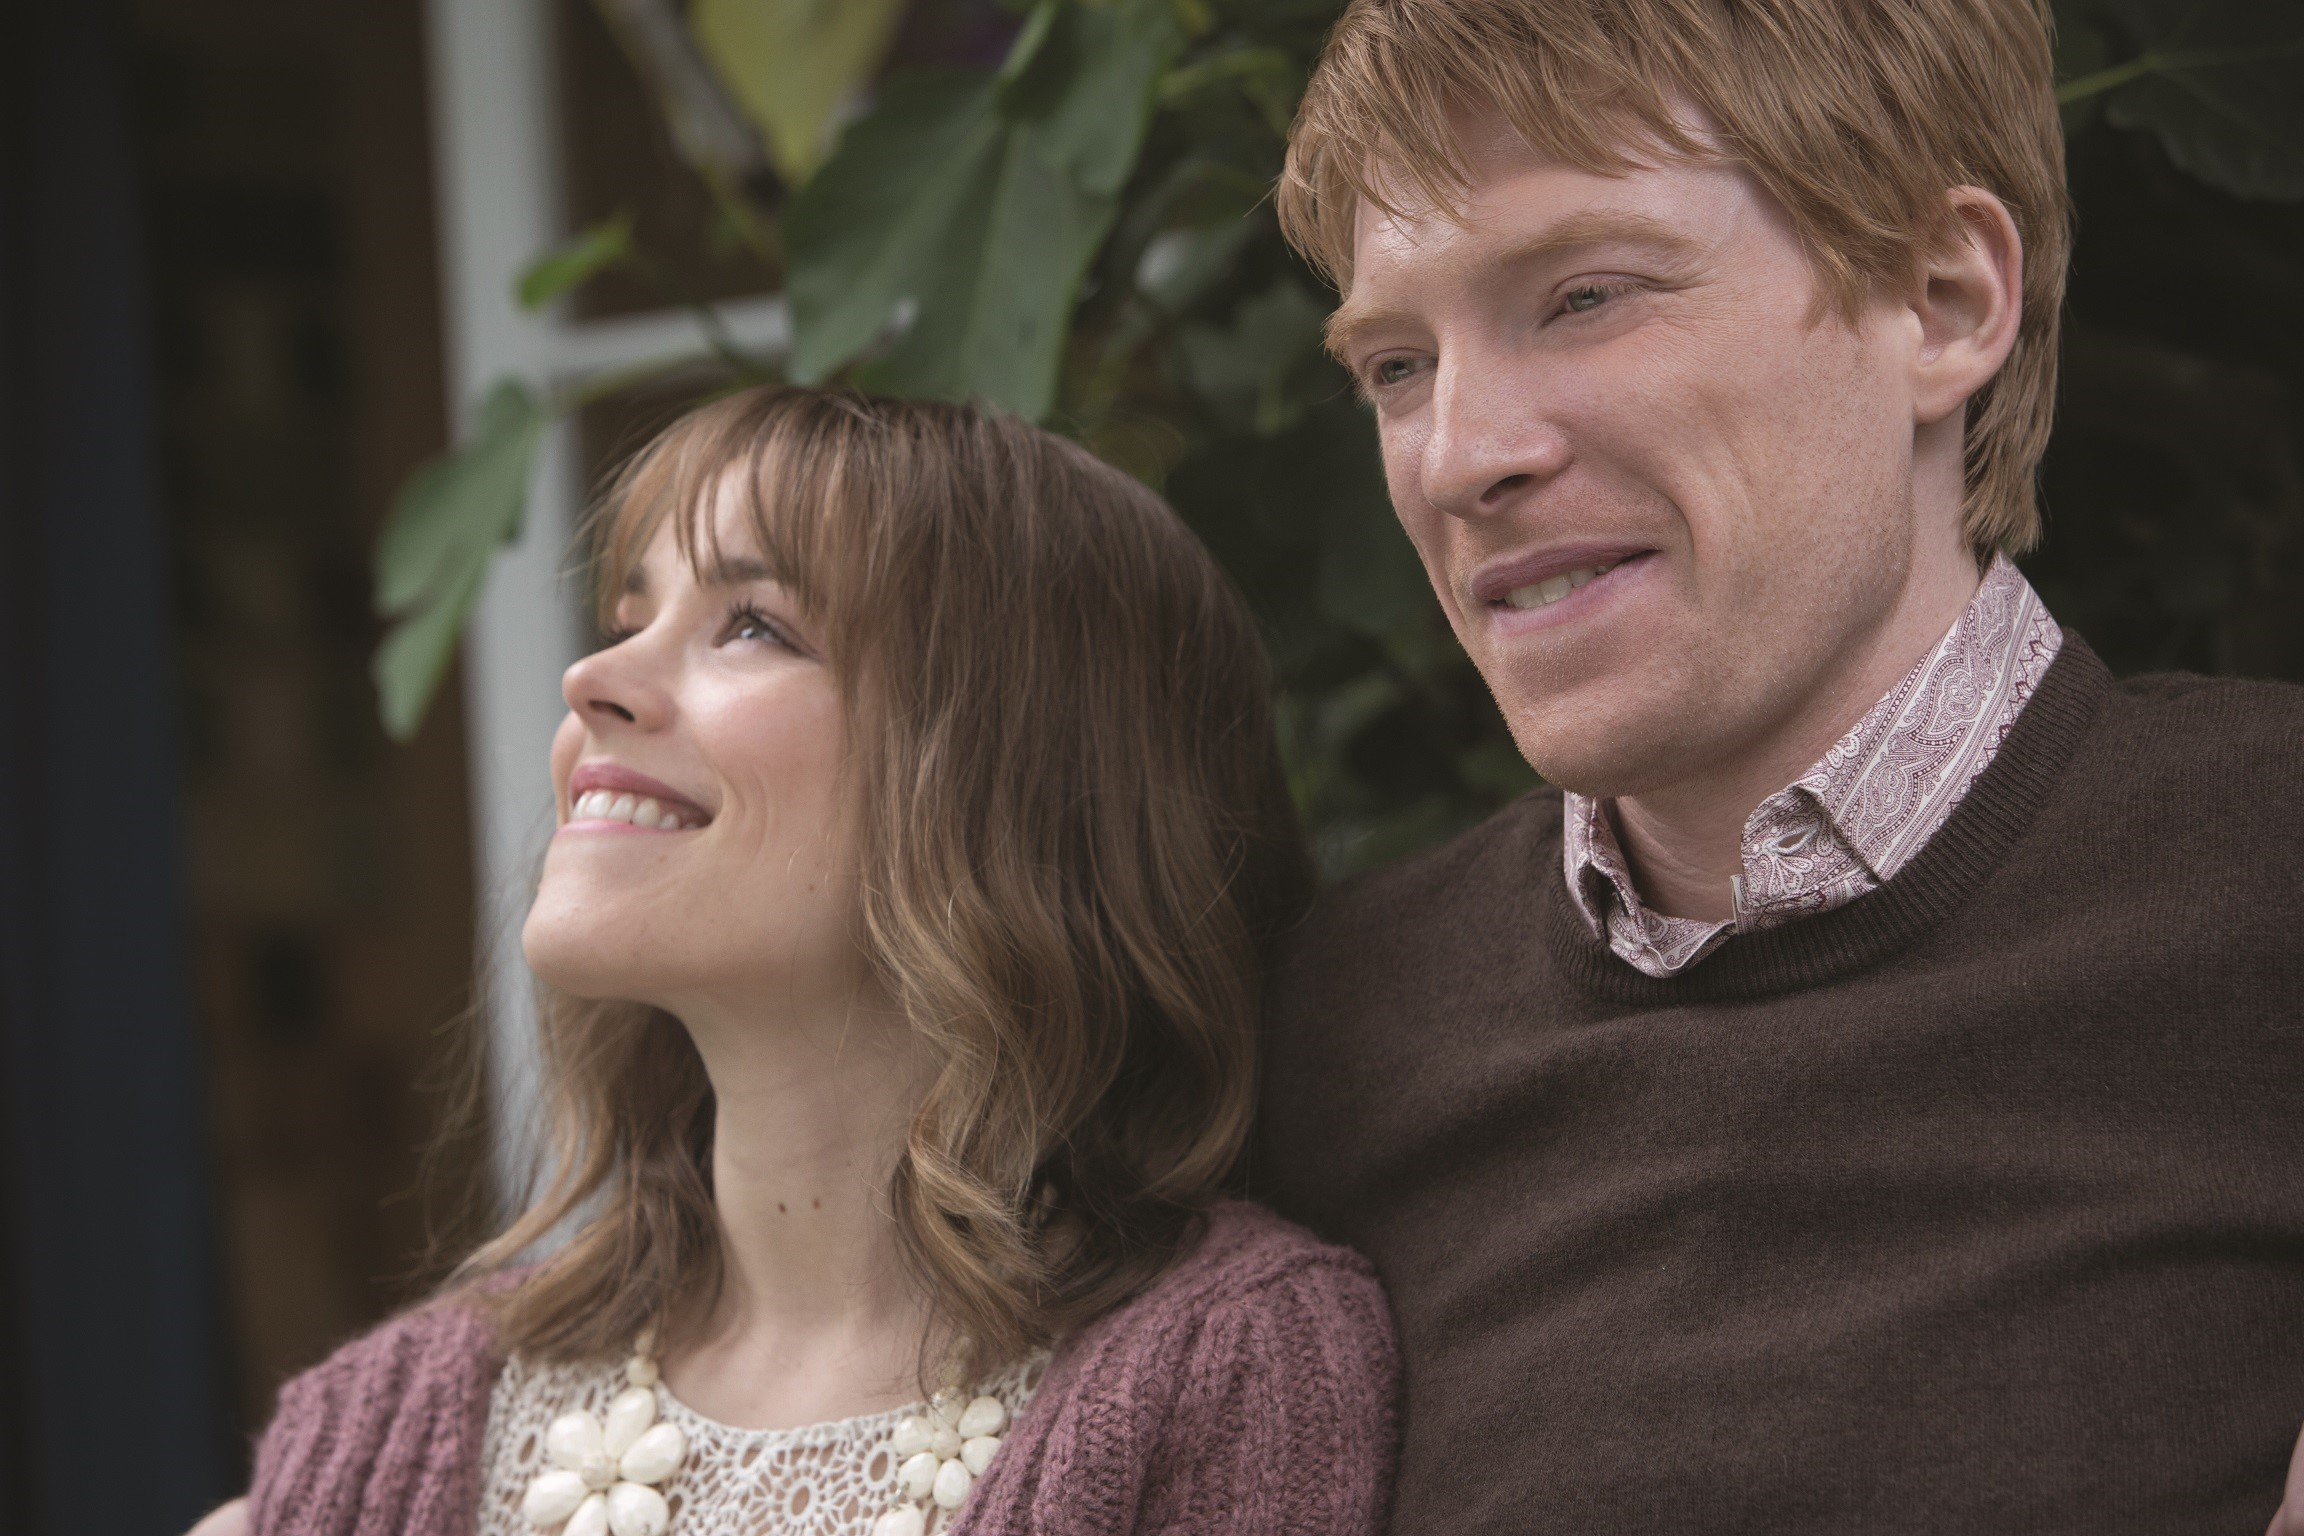 "Mary (RACHEL MCADAMS) and Tim (DOMHNALL GLEESON) in ""About Time"", the new comedy about love and time travel from writer/director Richard Curtis, which discovers that, in the end, making the most of life may not need time travel at all."